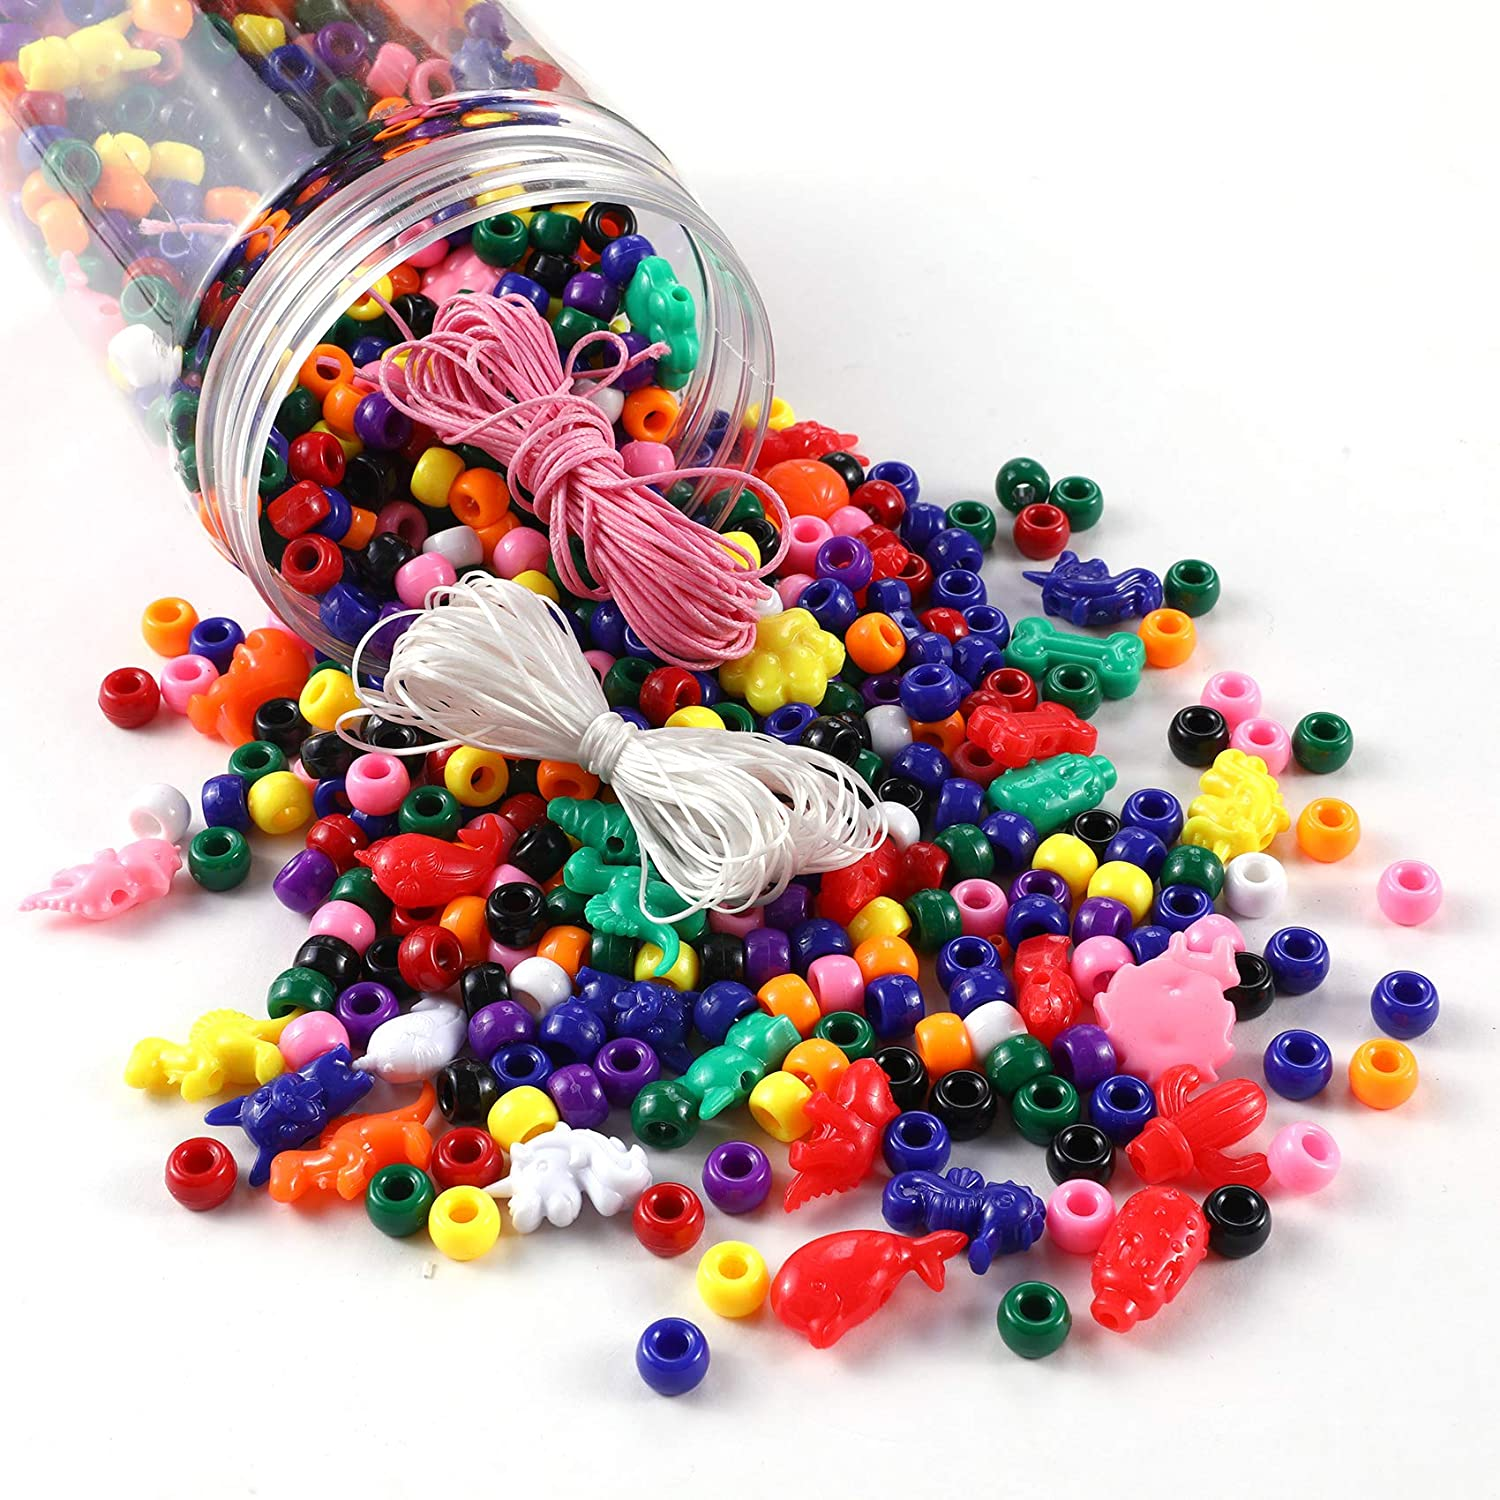 Miss Rabbit 900pcs 9mm Pony Beads Bucket, Bulk Rainbow Plastic Beads, with Large Animal Beads, Wax Cord and Elastic Cord Come with Bucket, for Hair Braids, Kids Jewelry Bracelet Necklace Making